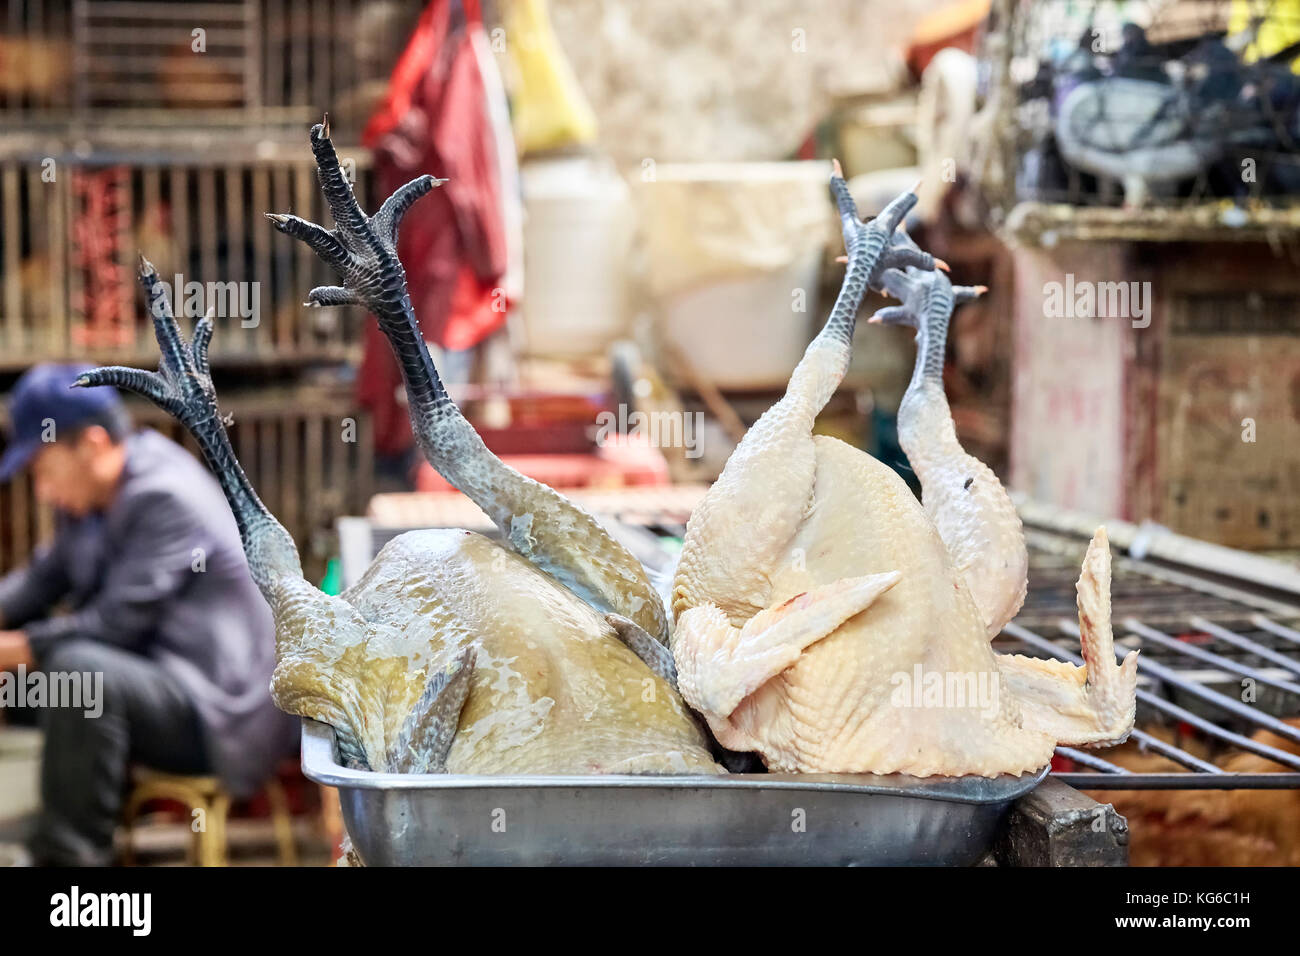 Lijiang, Yunnan, China - September 27, 2017: Close up picture of poultry on a tray at the local meat market. - Stock Image